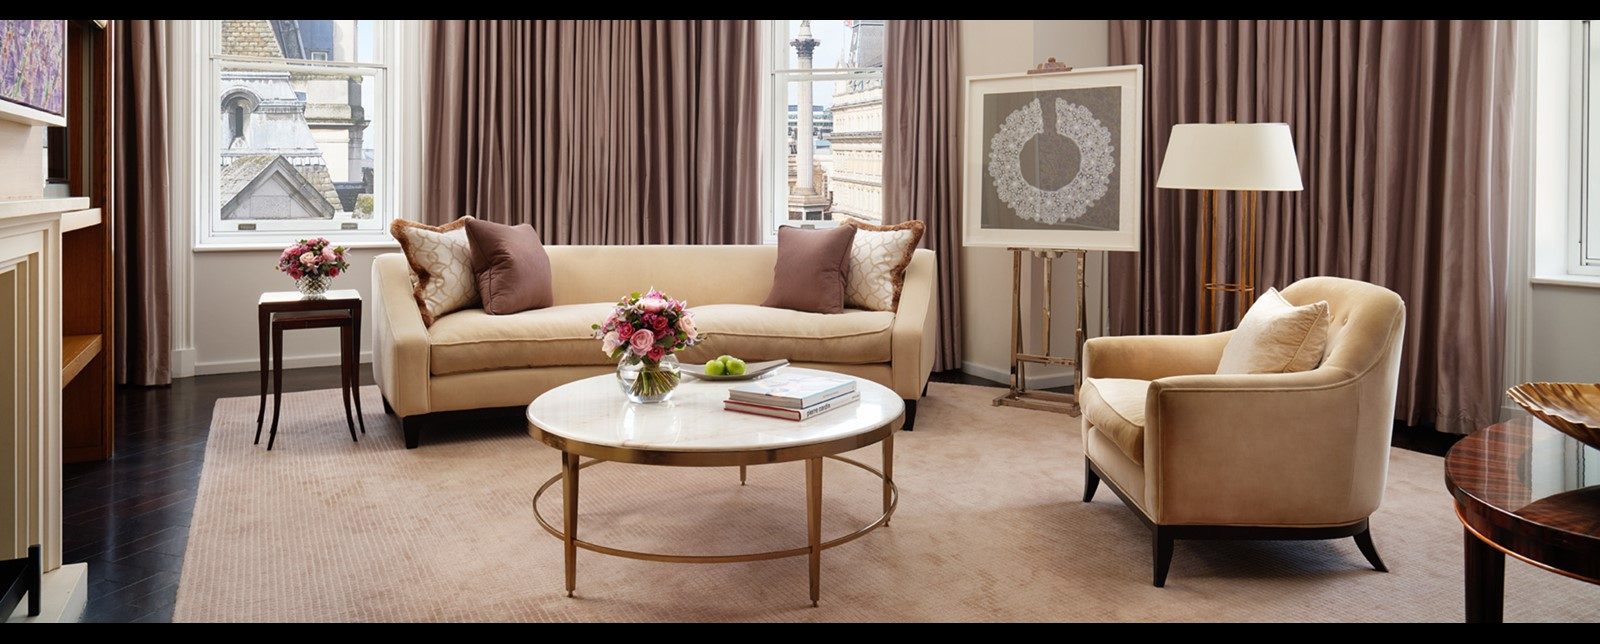 corinthia london trafalgar suite